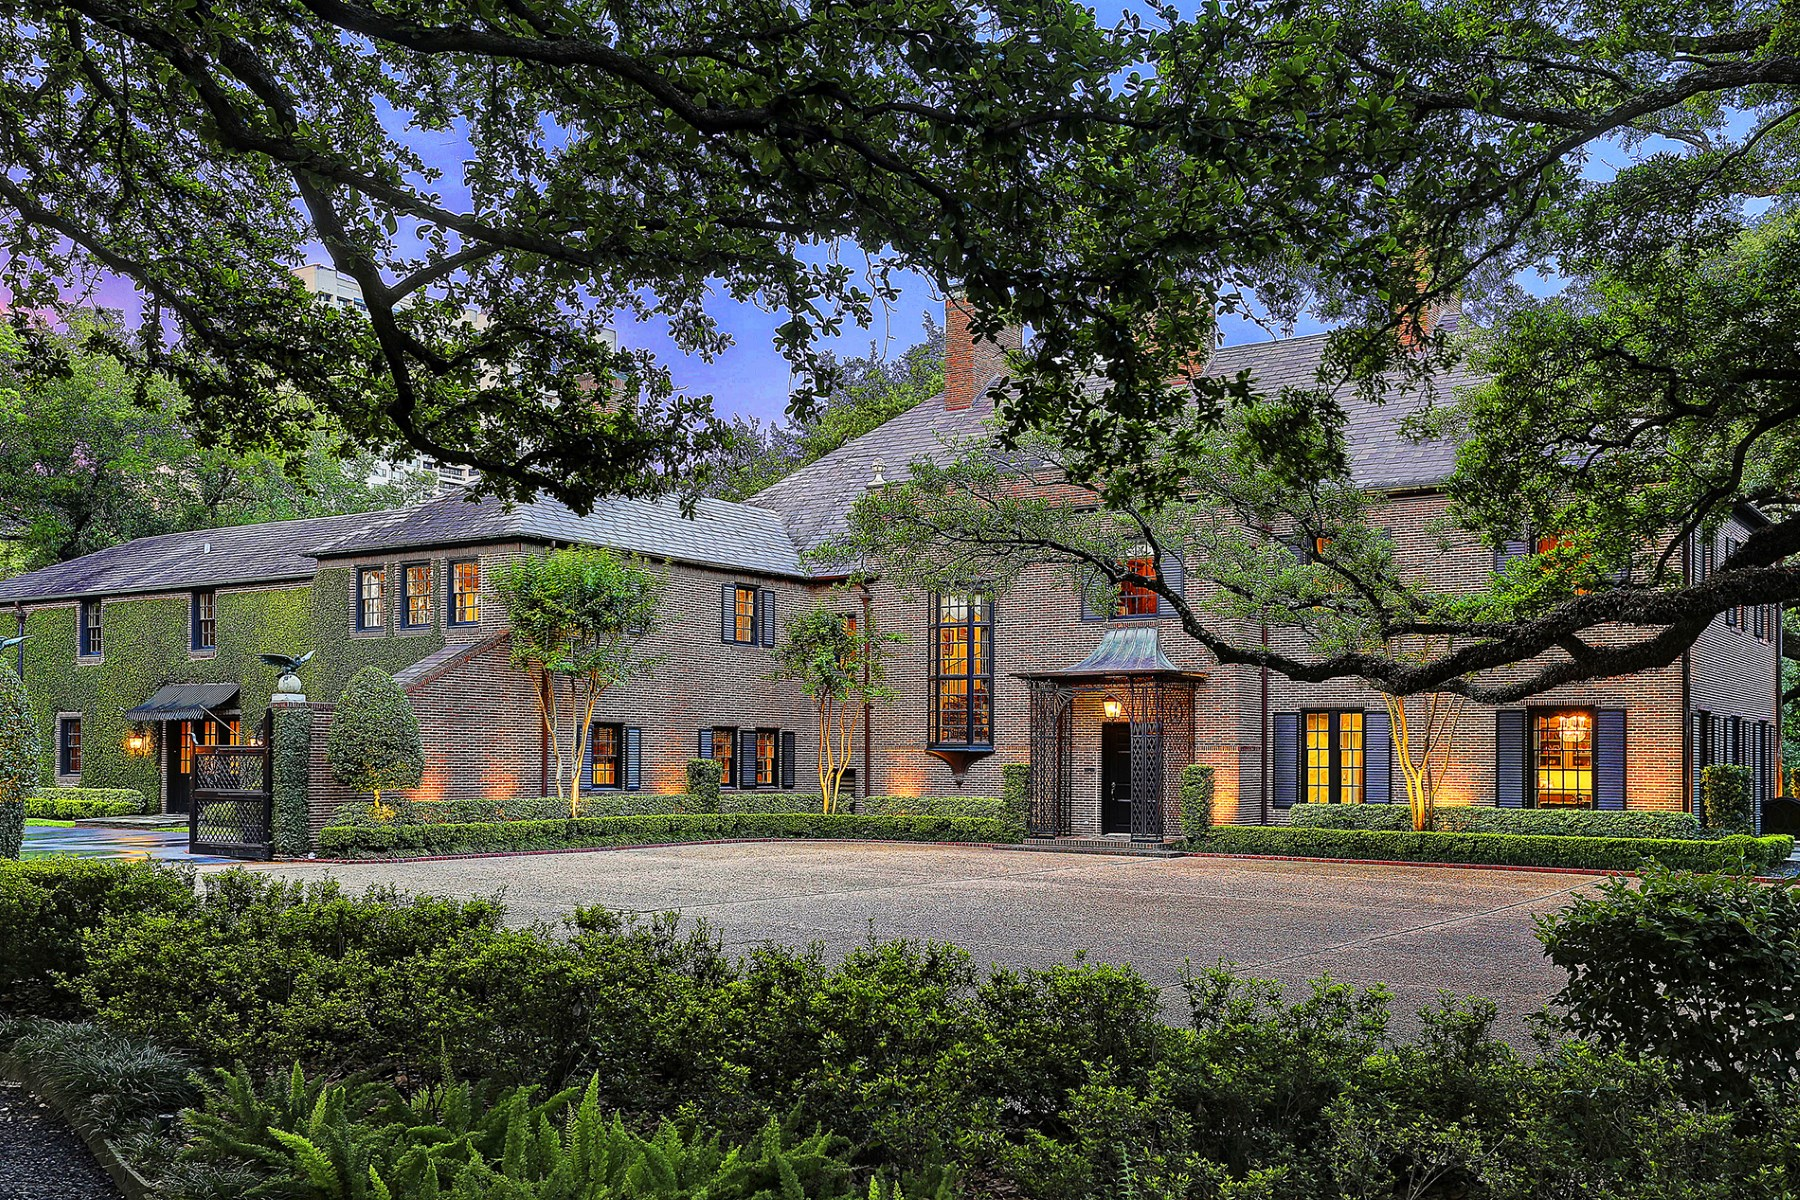 Villa per Vendita alle ore 2 Longfellow Lane Houston, Texas, 77005 Stati Uniti